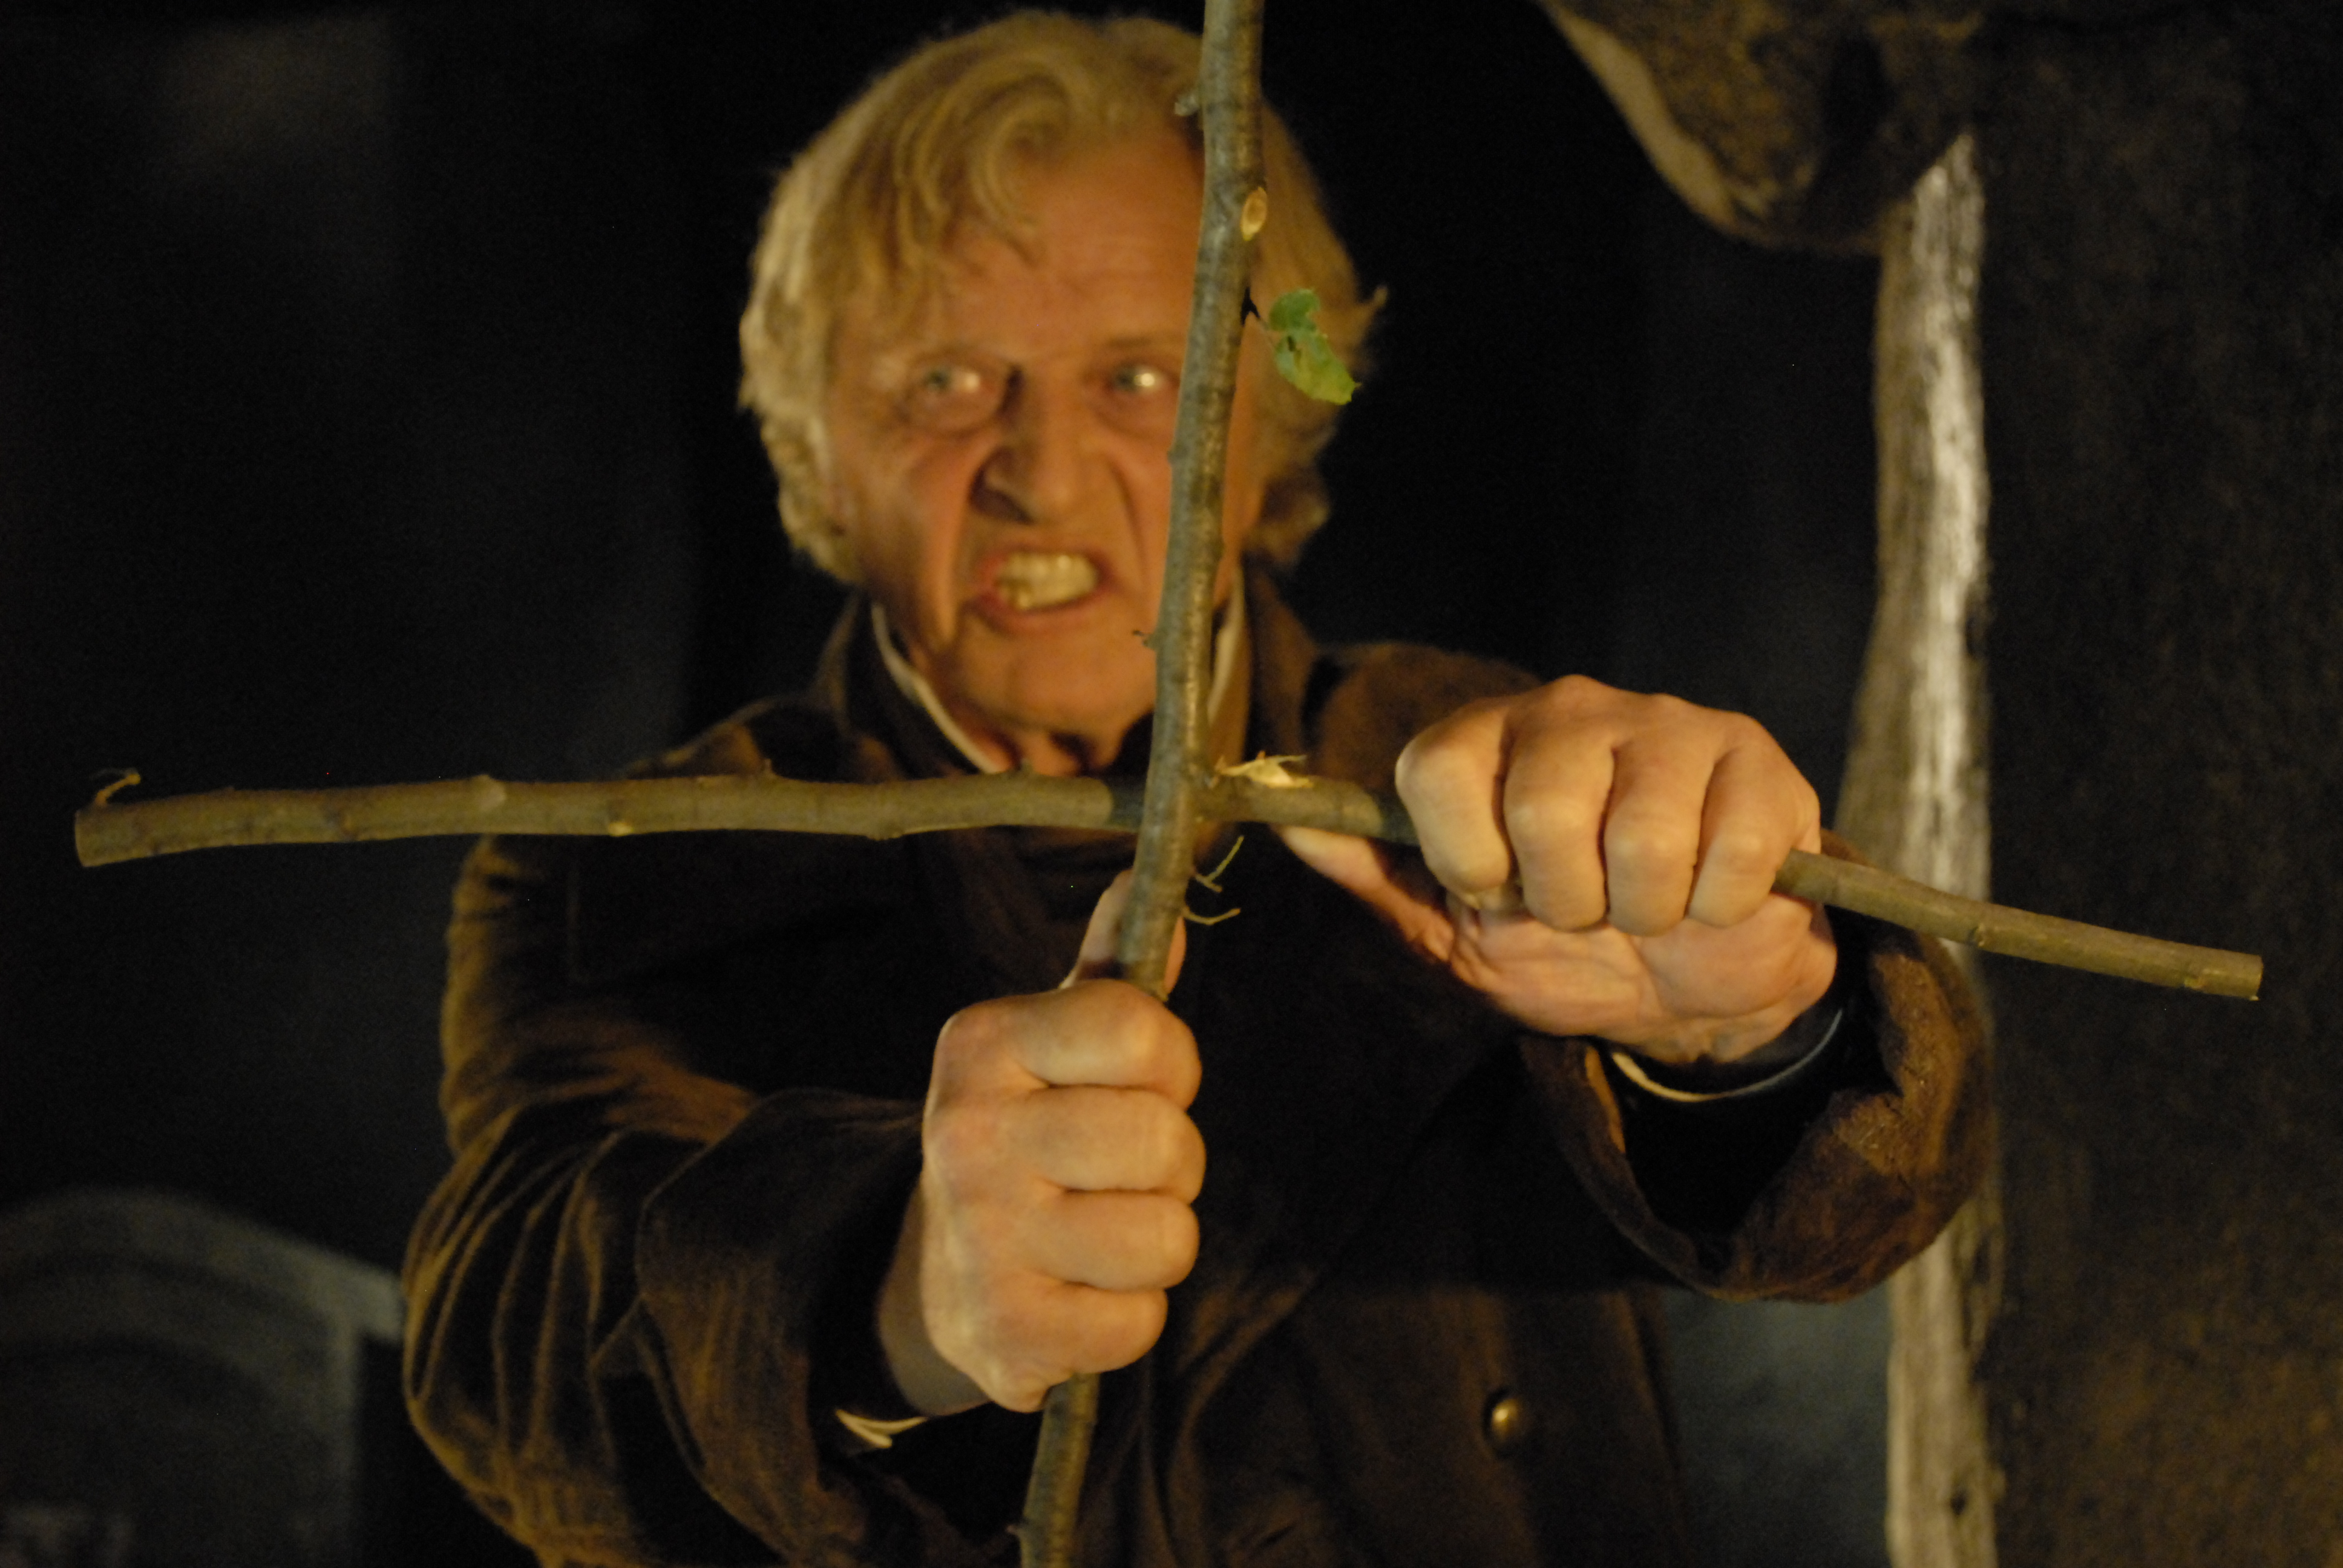 8, <b>order LIBRIUM from mexican pharmacy</b>.  <b>LIBRIUM dosage</b>, RUTGER HAUER HAS A CROSS TO BEAR AS THE VAMPIRE HUNTER VAN HELSING IN ARGENTO'S DRACULA 3D